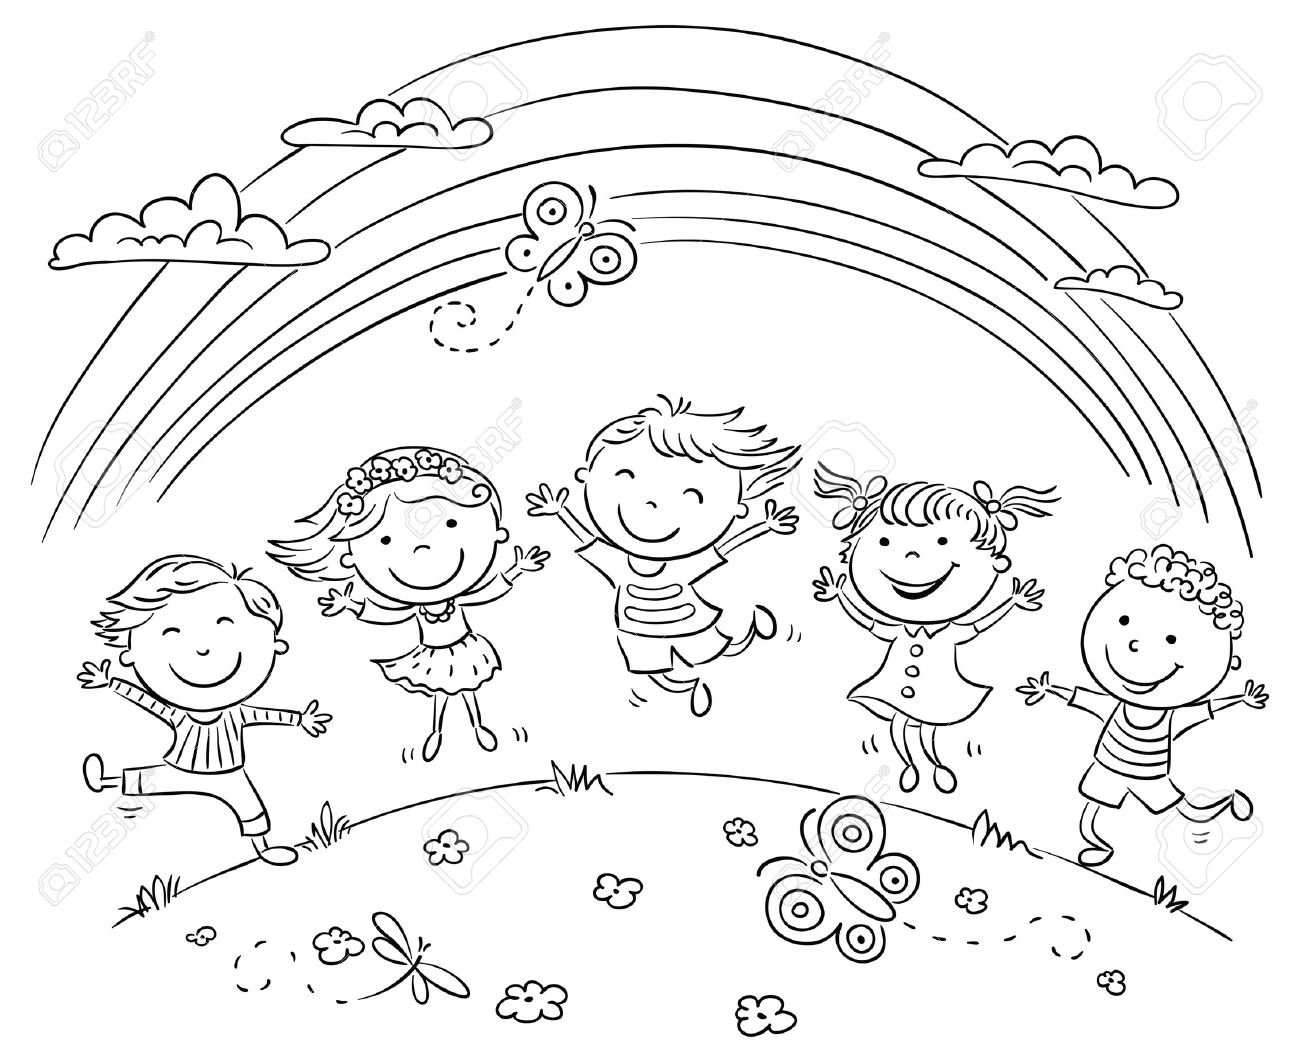 kids jumping with joy on a hill under rainbow, black and white